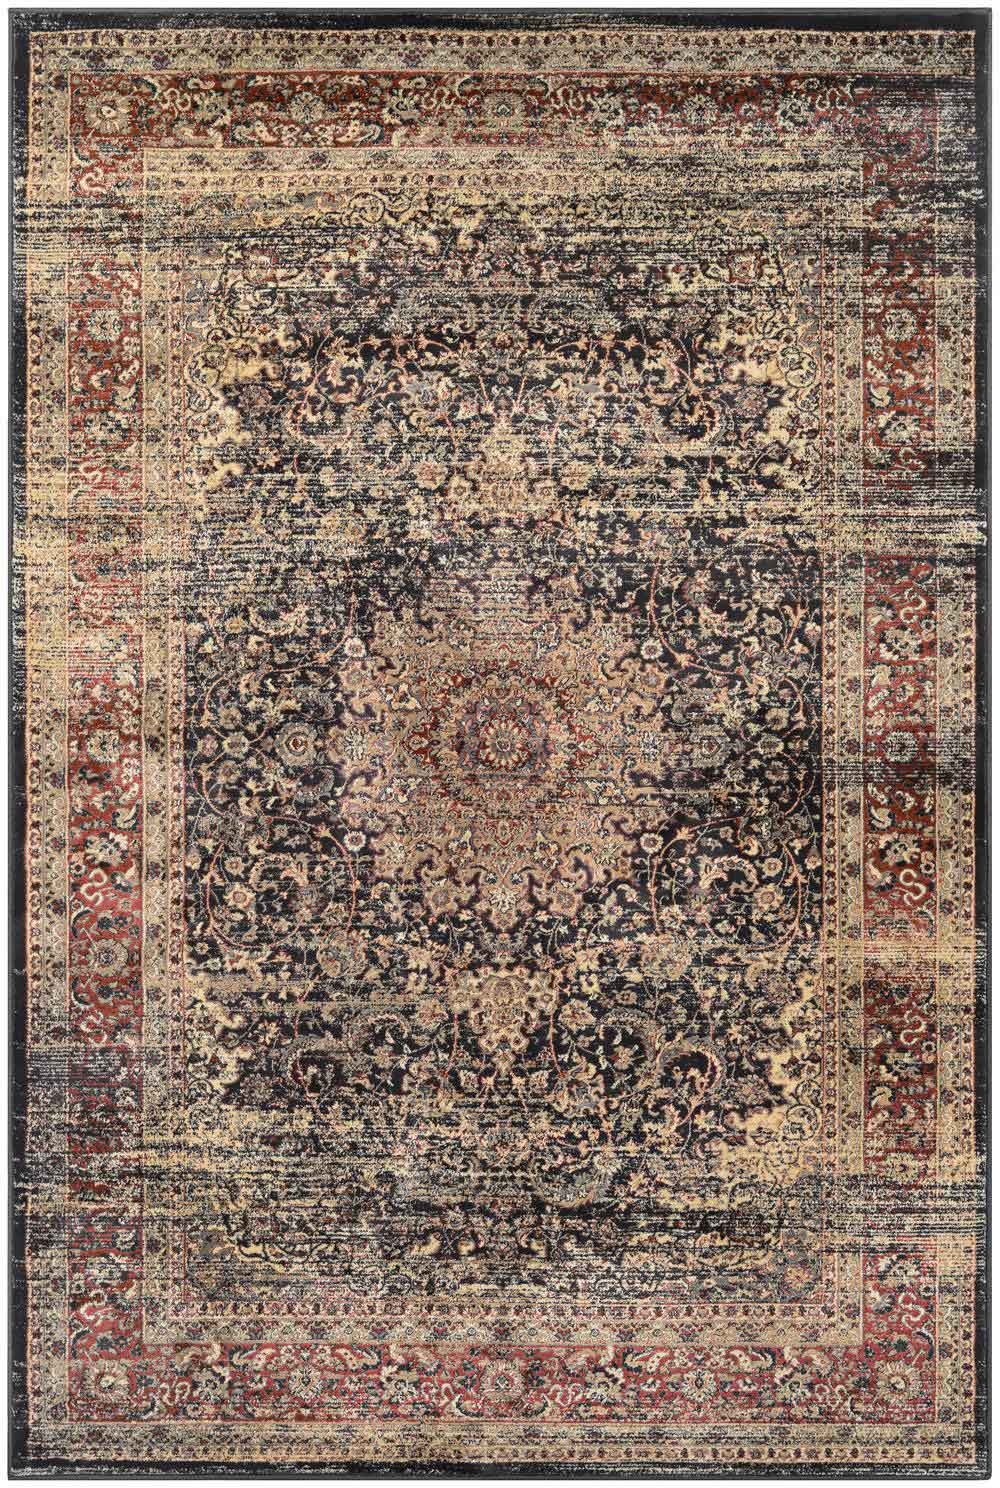 Traditional oriental area rugs